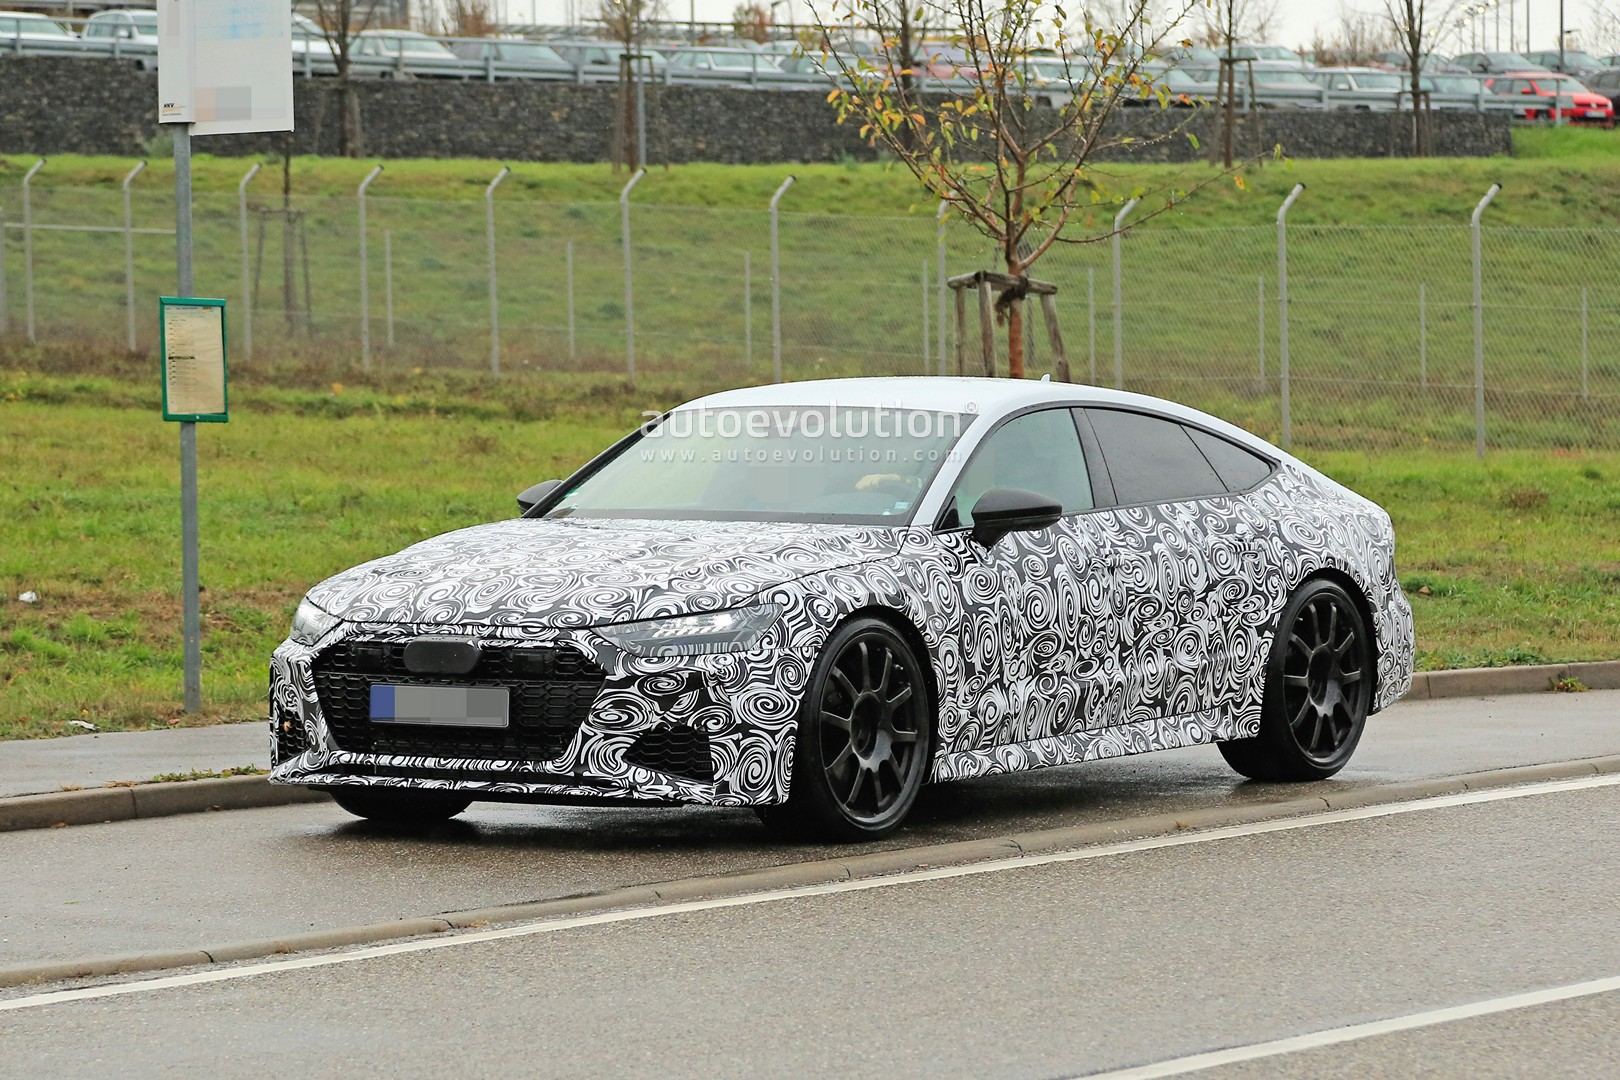 2020 Audi Rs7 Sportback Spied In Production Form As 700 Hp Hybrid